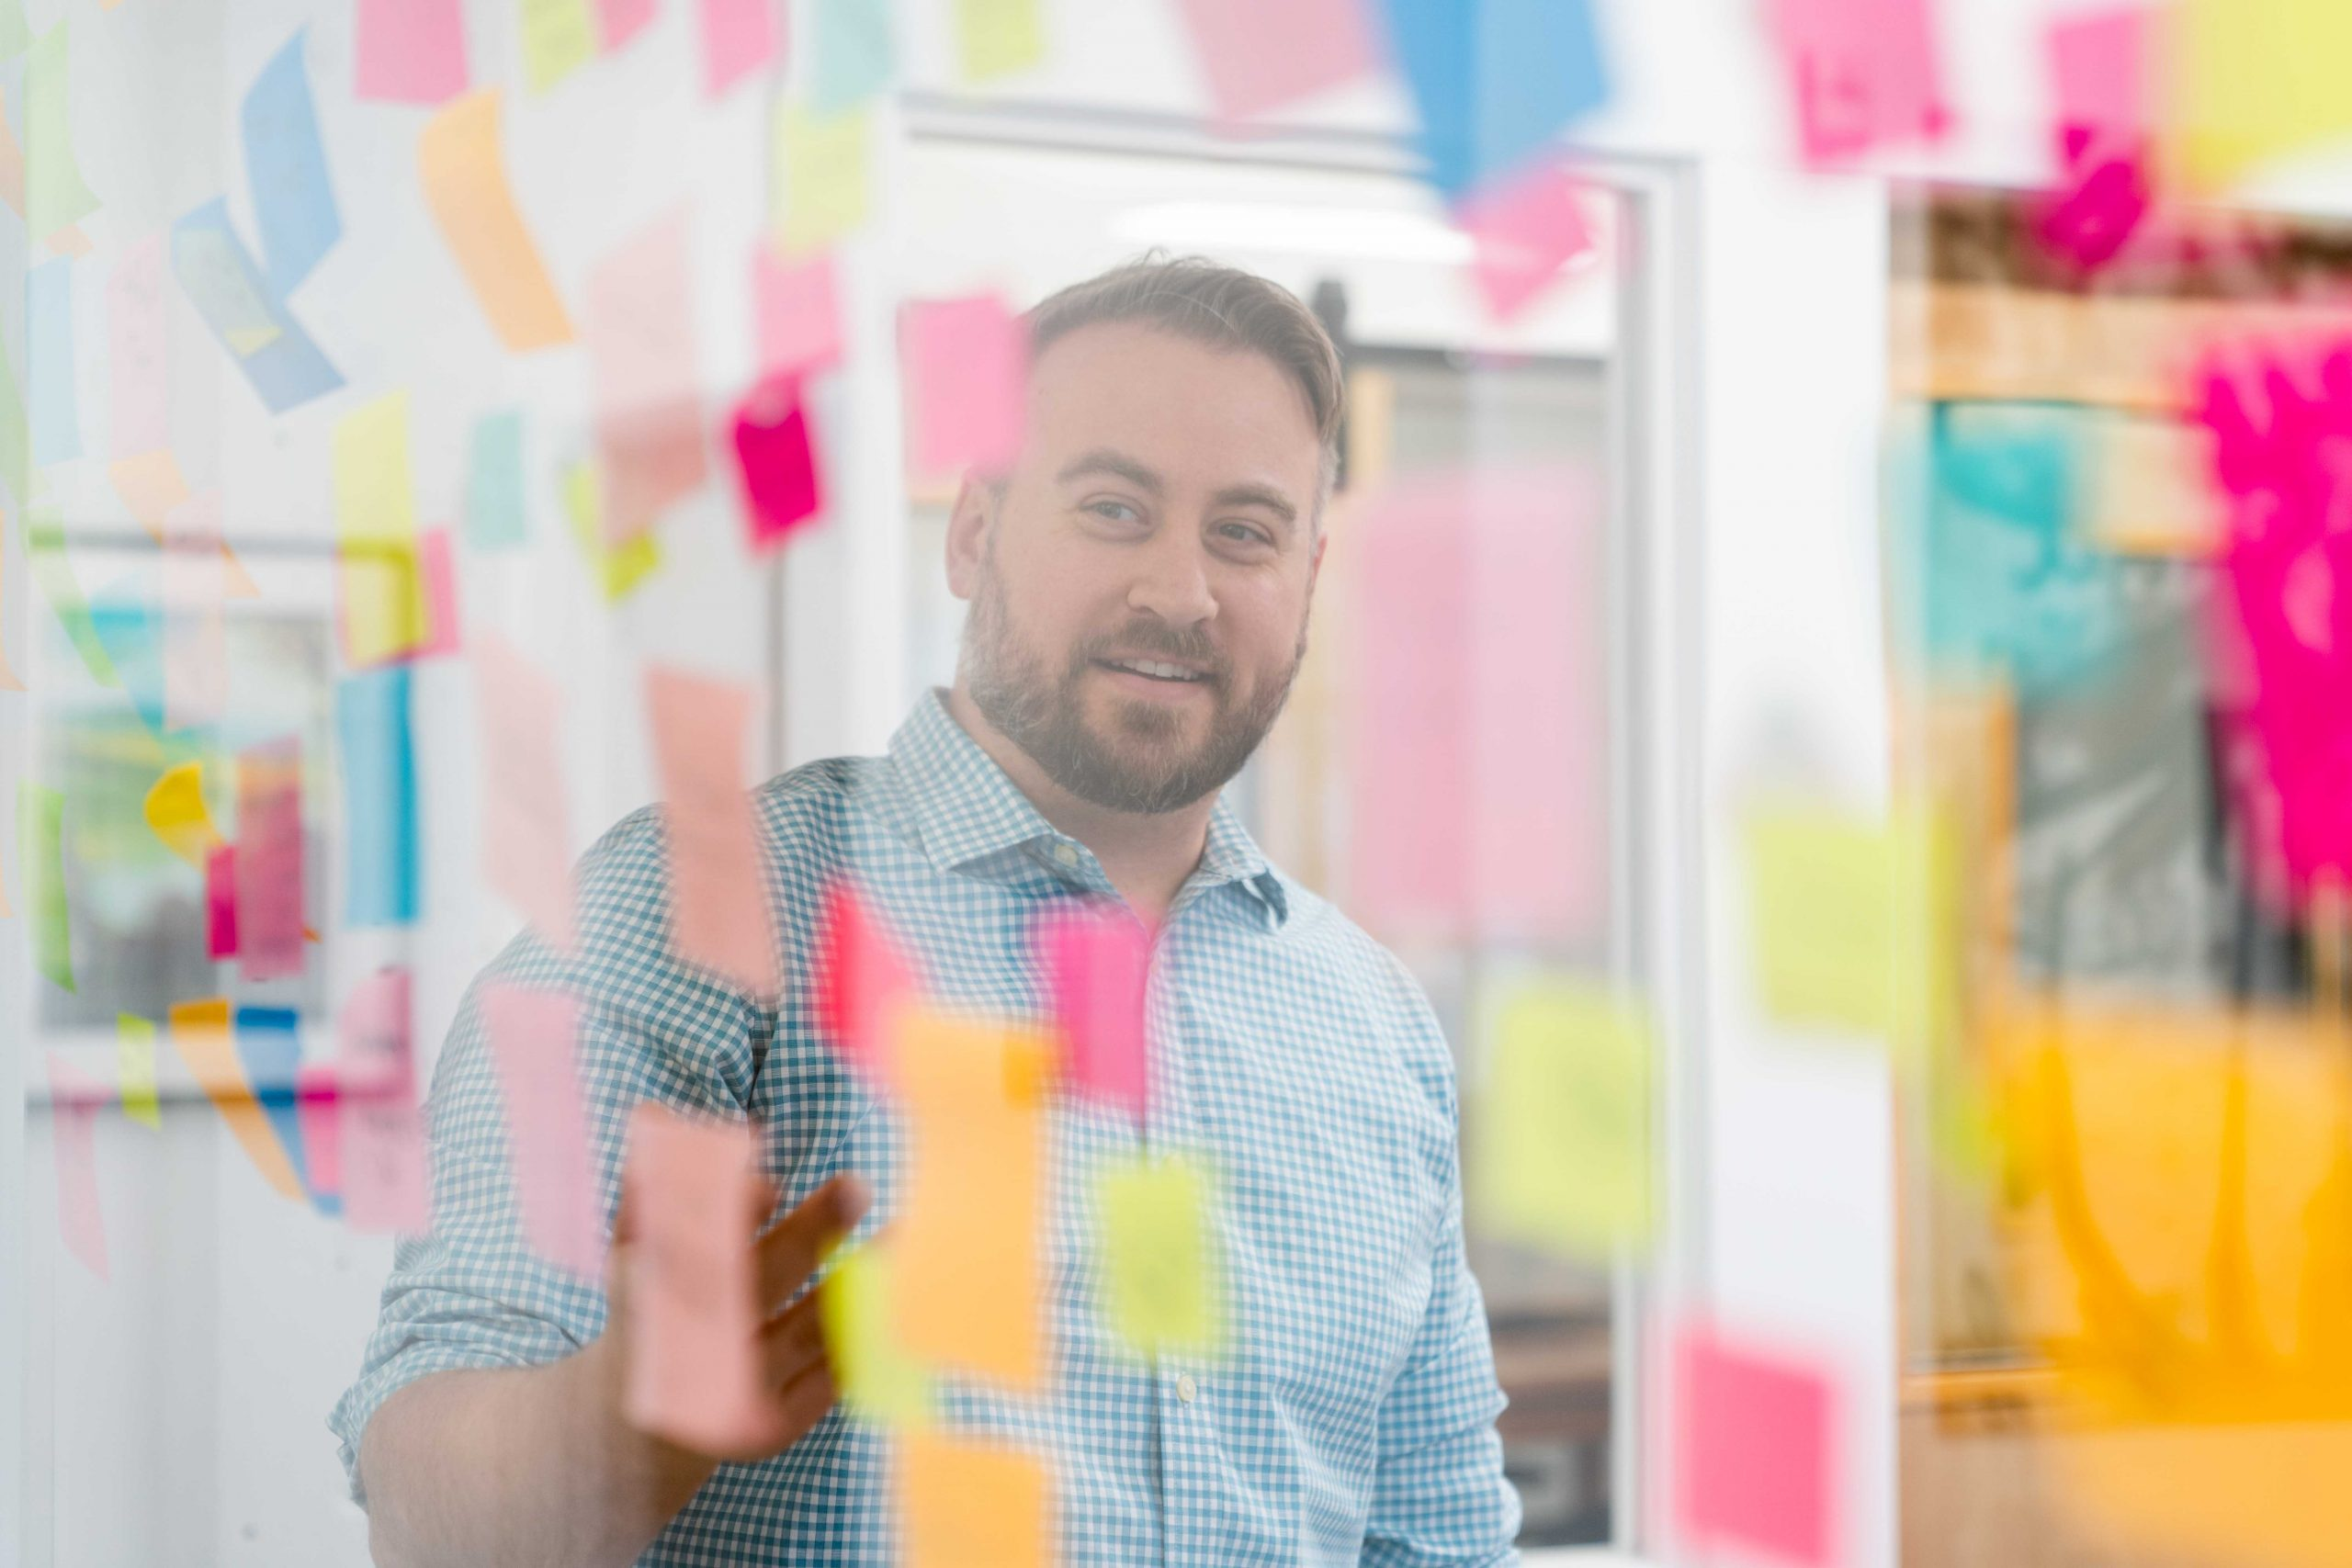 Looking through a window, seeing a man pointing at a wall of post-it notes during a brainstorming session at Oneupweb.